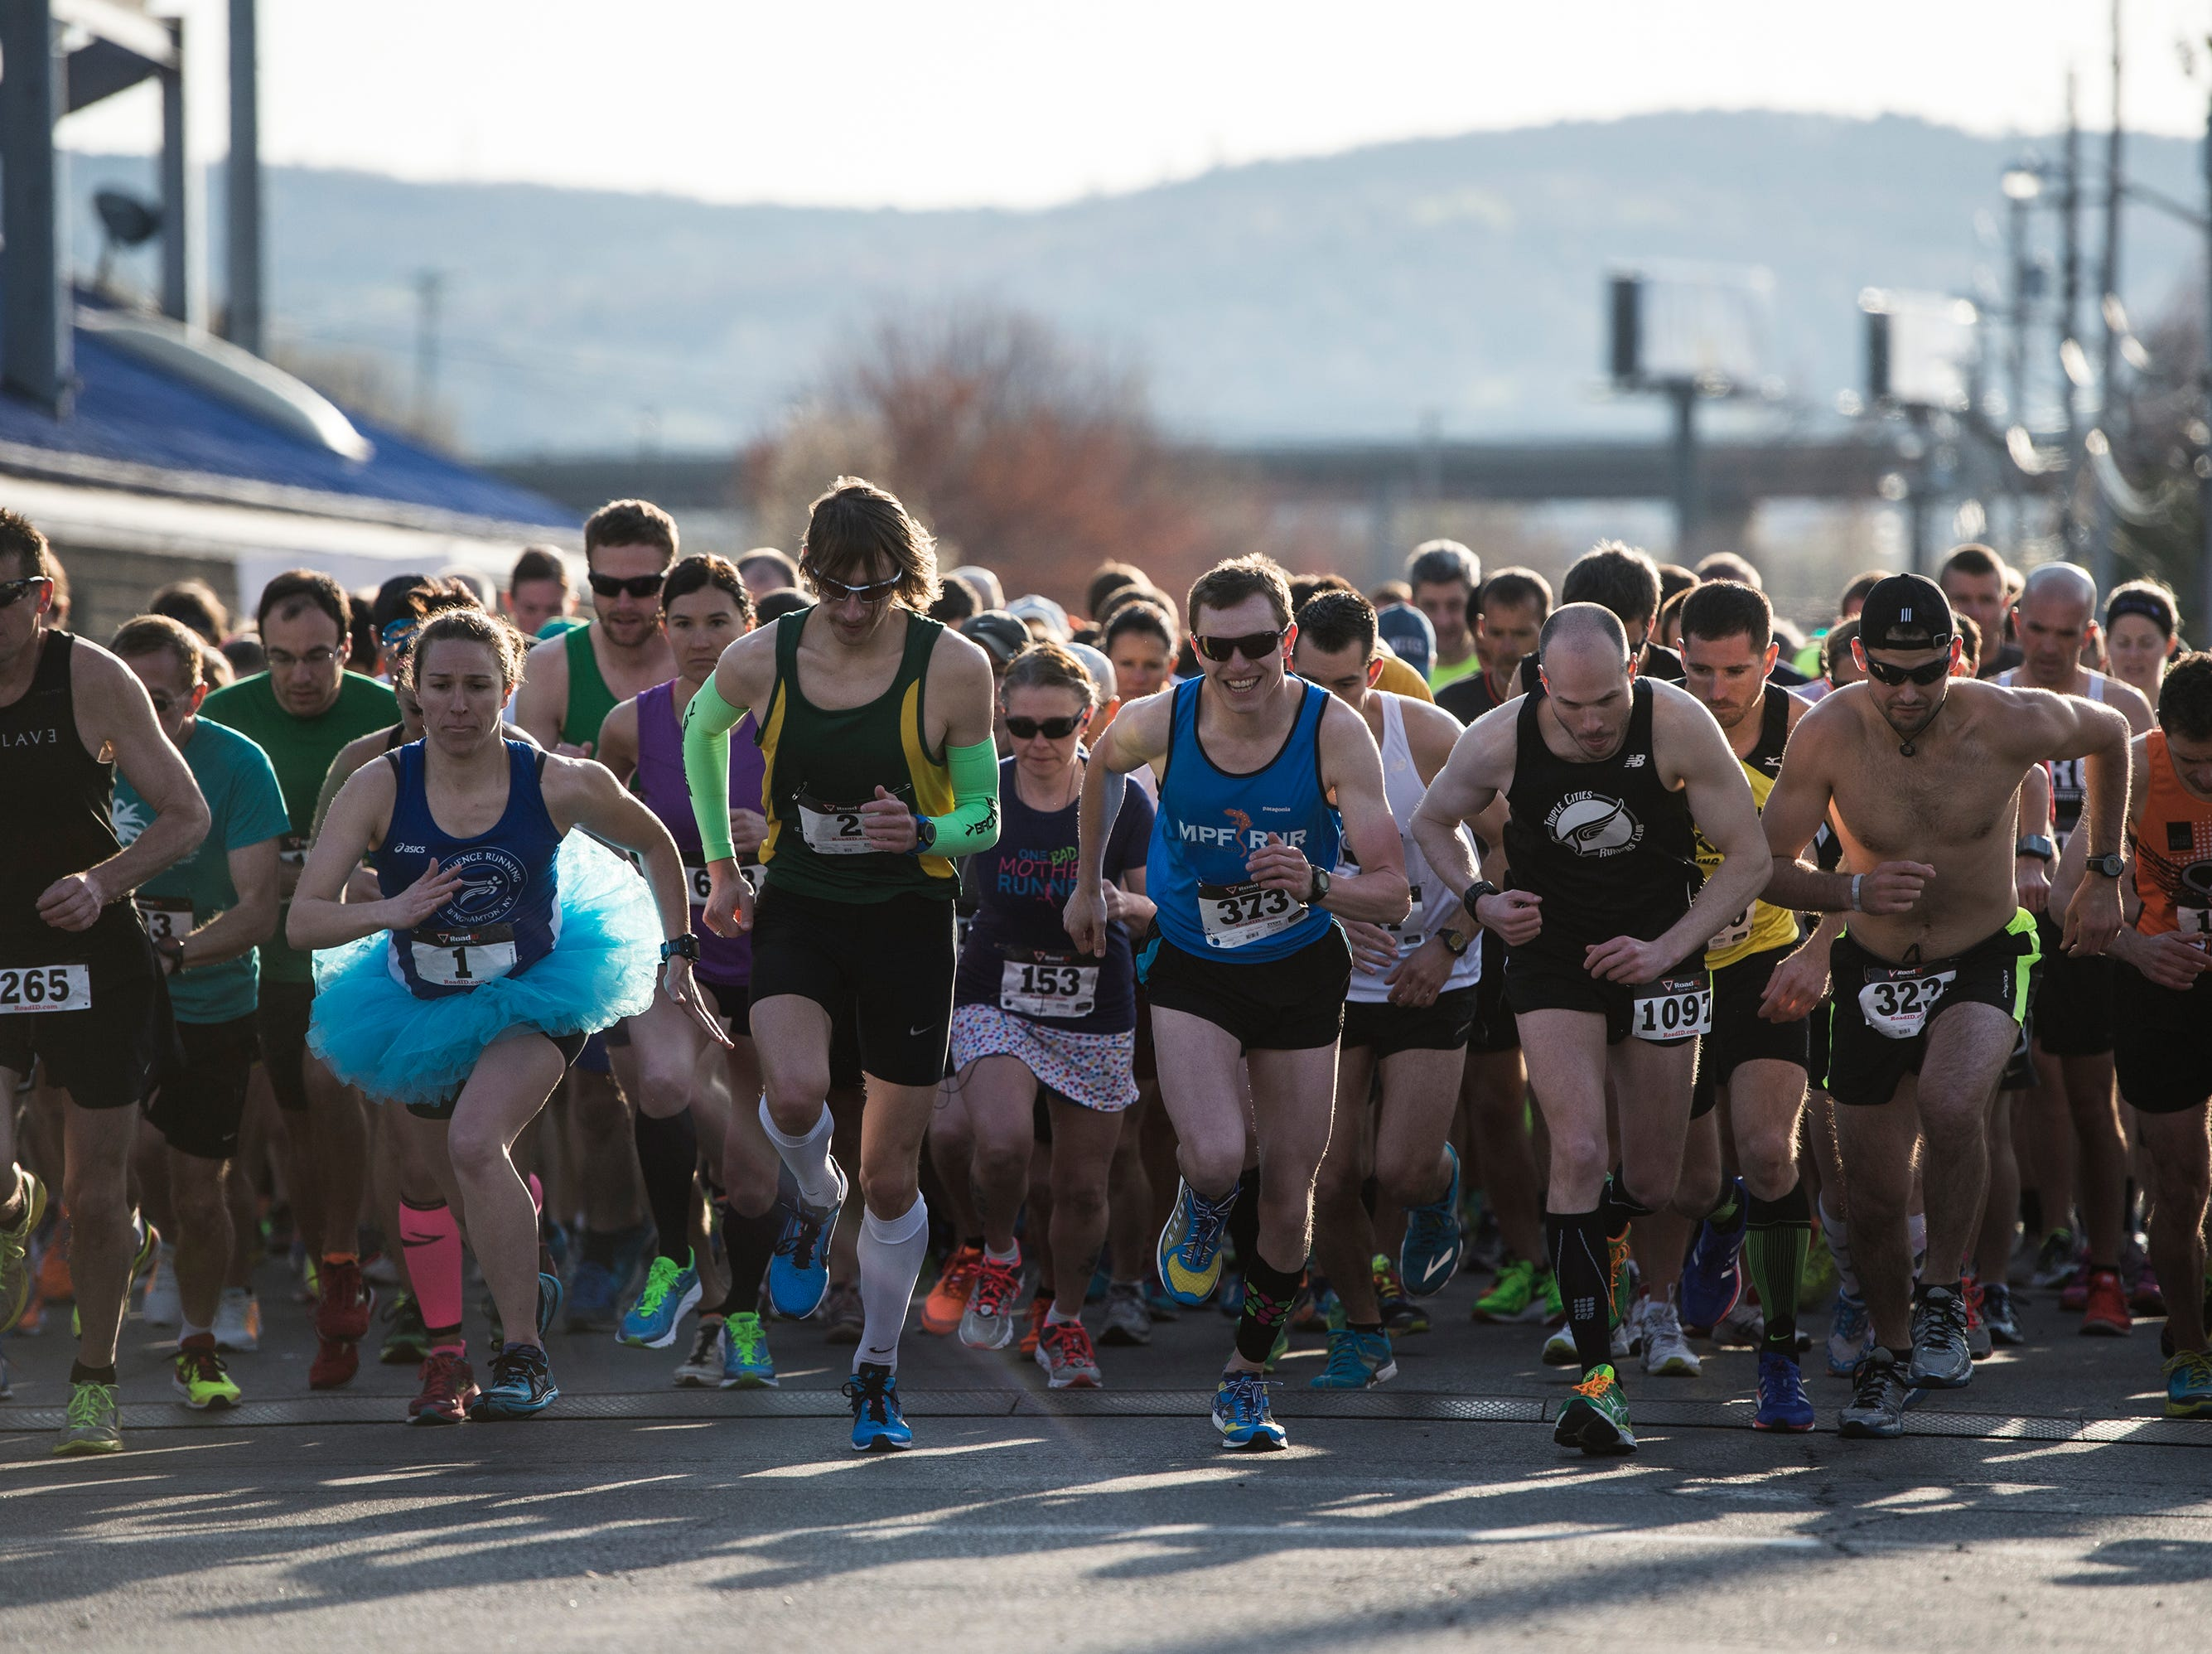 2015: Runners take off at the starting line of the Greater Binghamton Bridge Run 5k on Sunday, May 3, 2015.